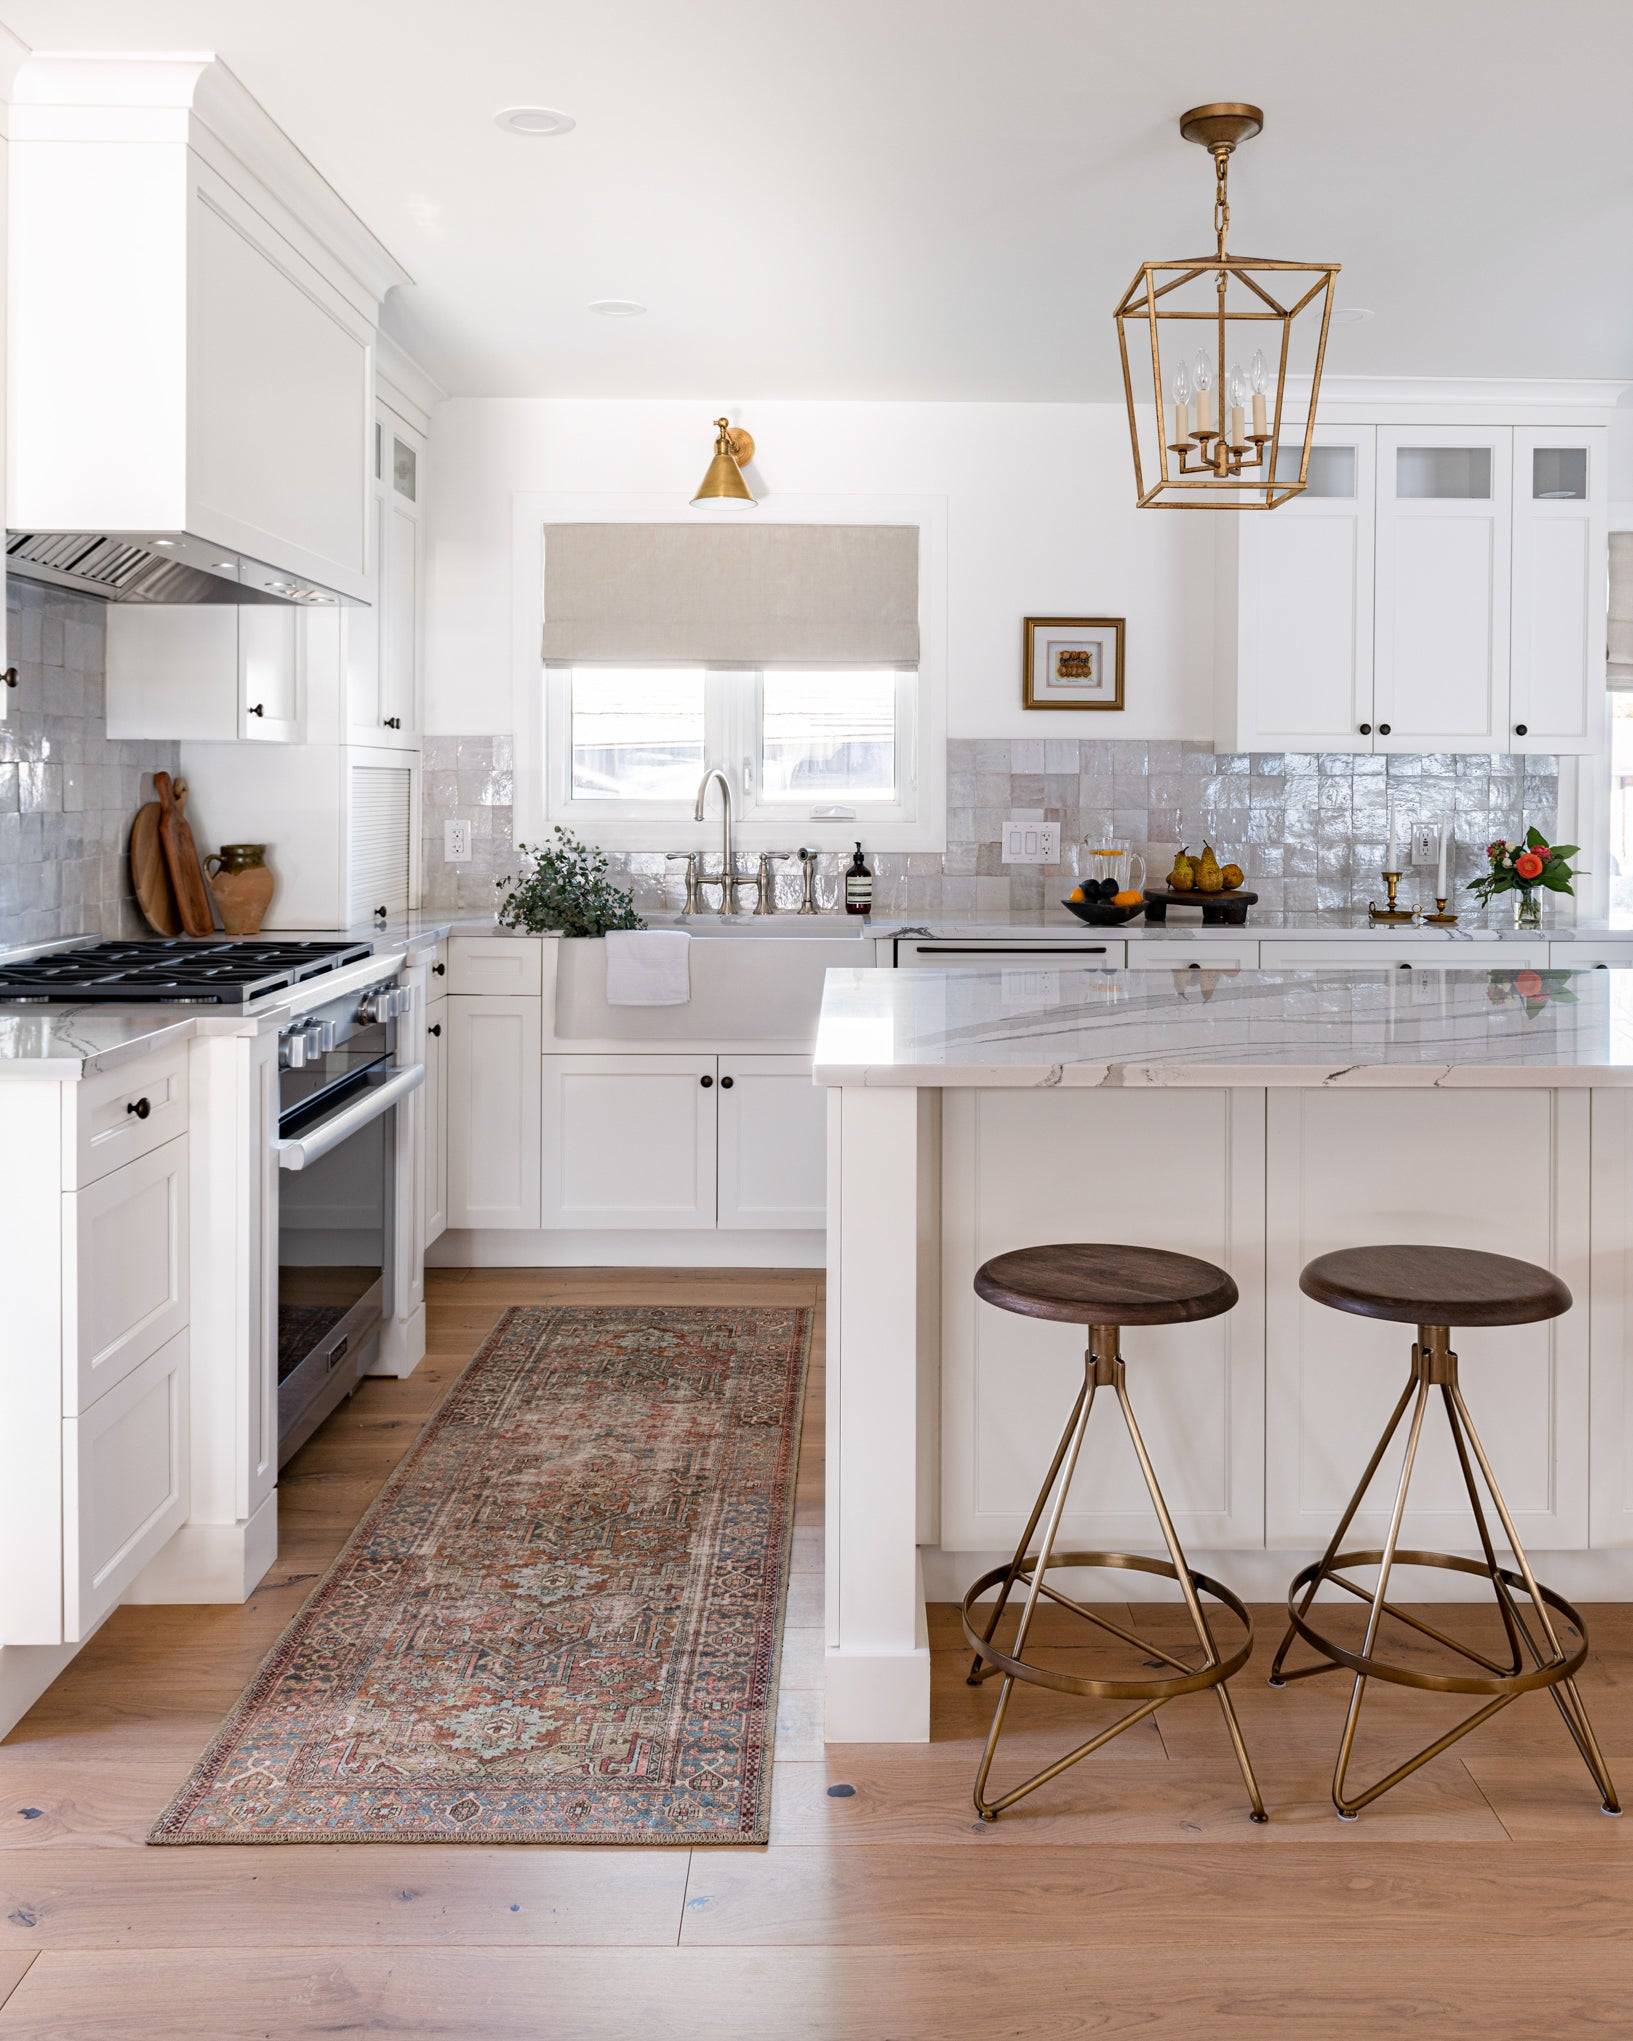 Warm and timeless kitchen runner.